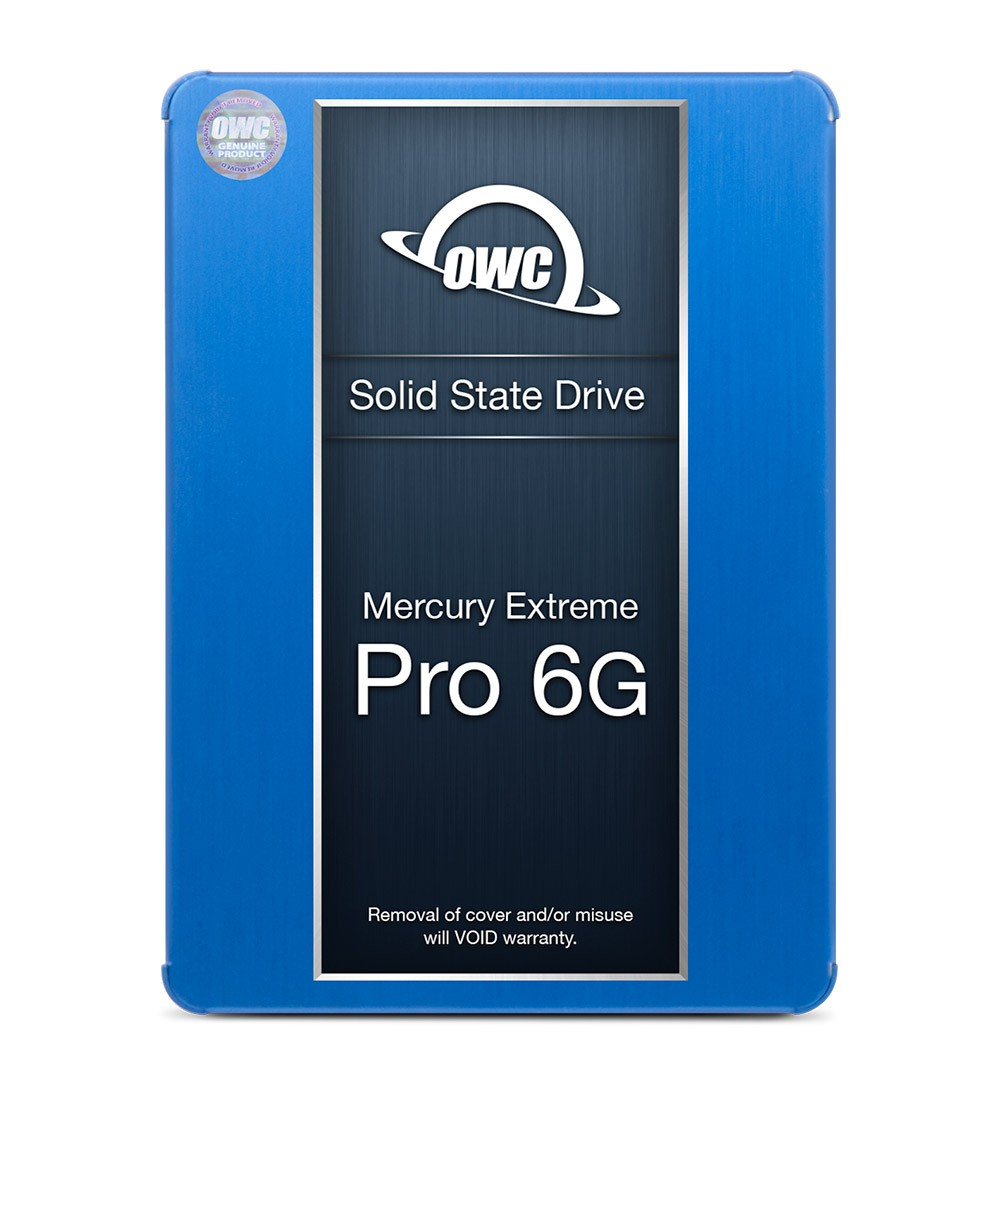 1.0TB OWC Mercury EXTREME Pro 6G SSD Solid State Drive - 7mm, OWCSSD7P6G960